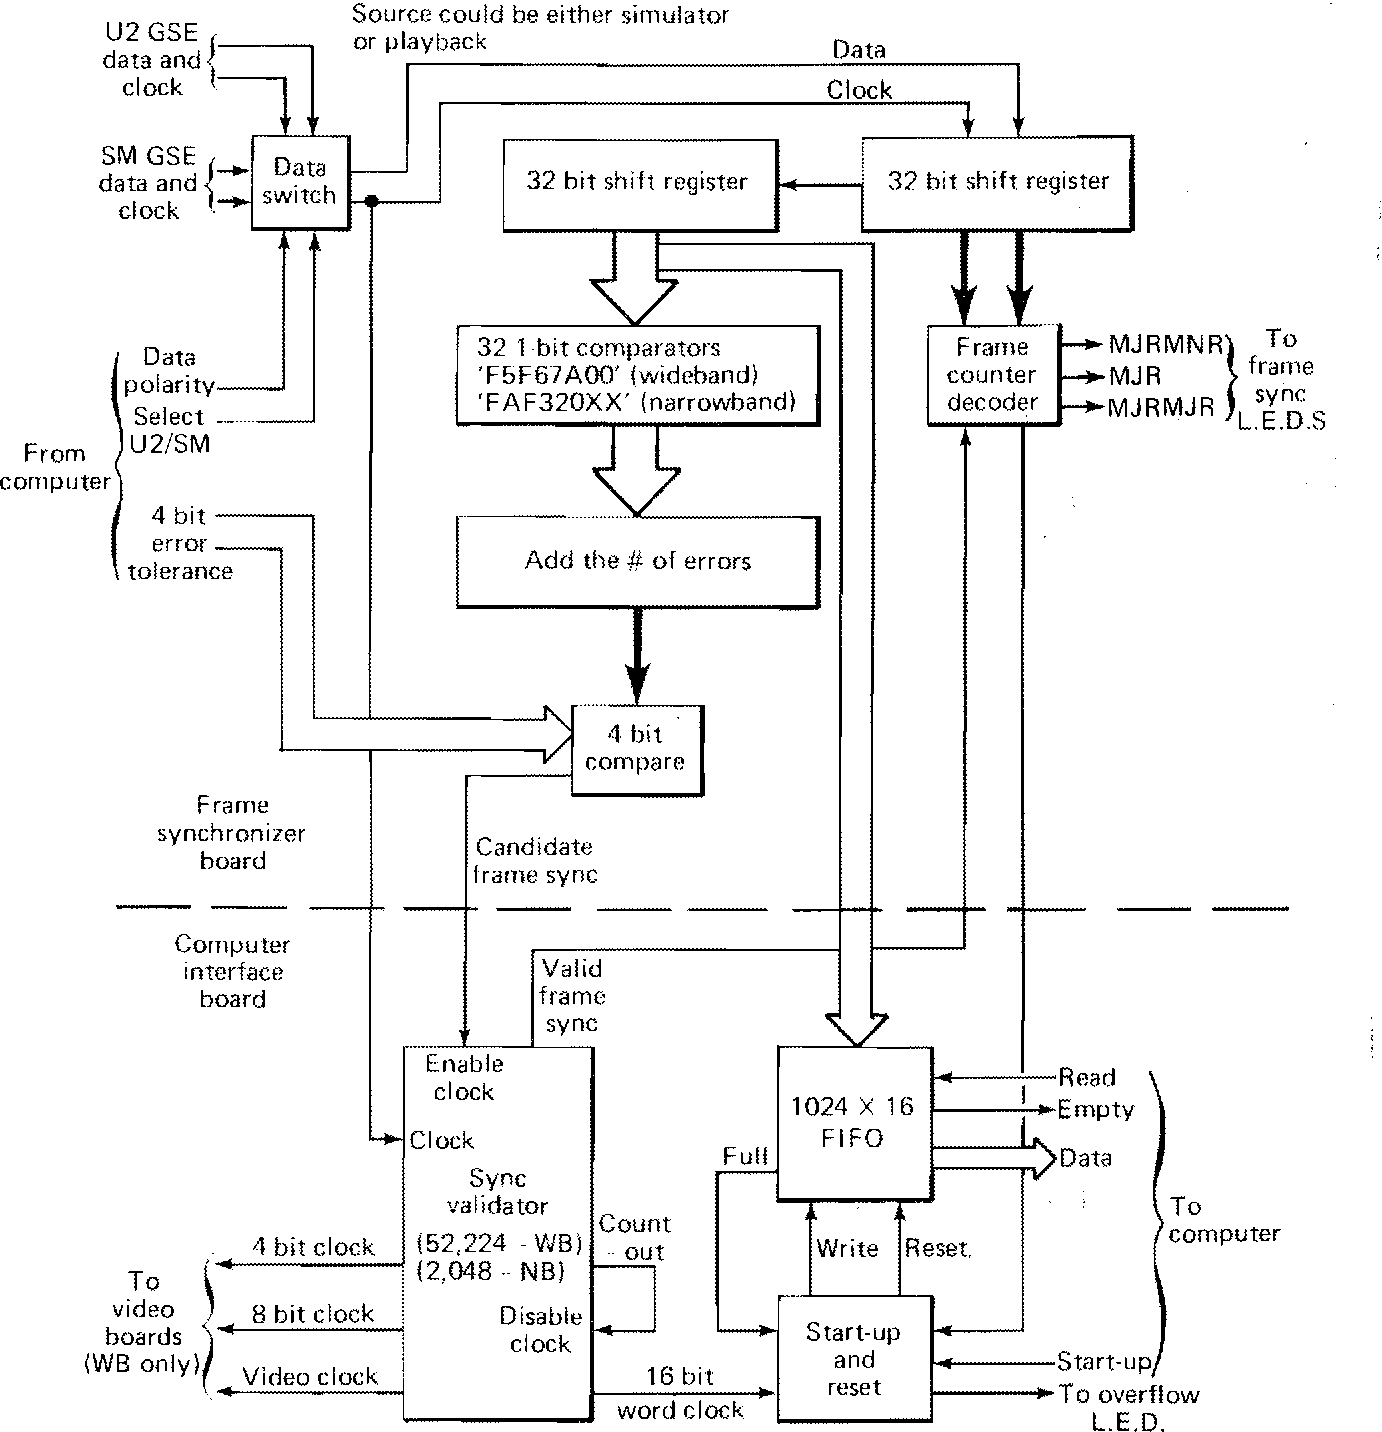 1 Bit Comparator Block Diagram Figure 11 From The Johns Hopkins Uniiiersity Applied Physics Of Frame Synchronizer Computer Interface